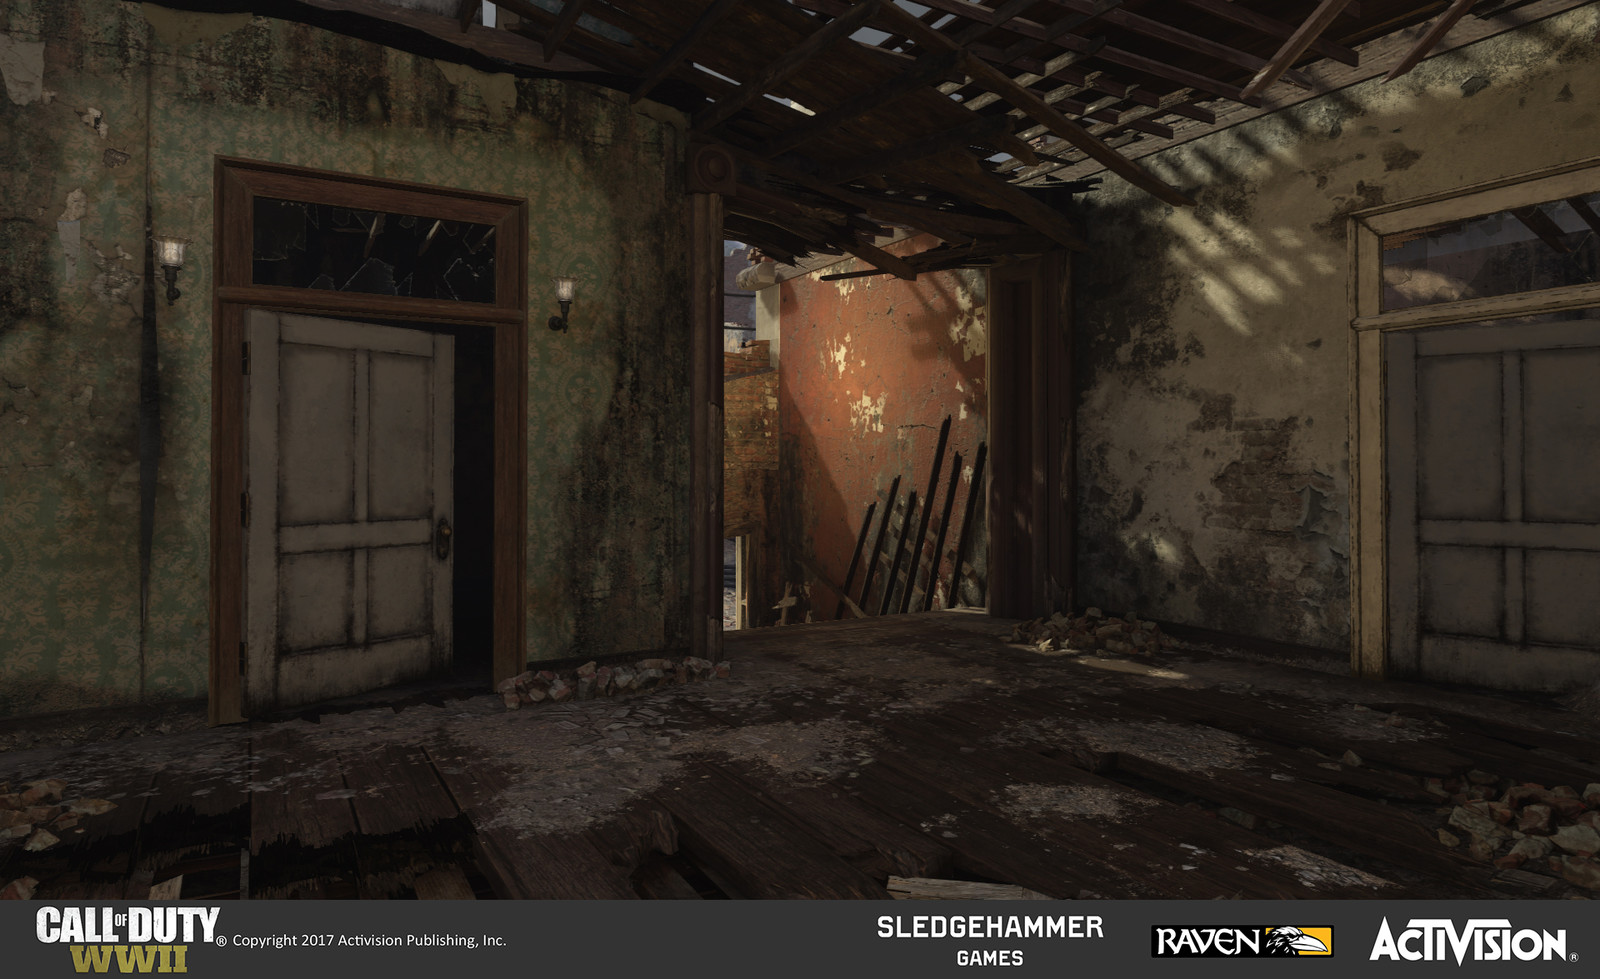 MG-Nest: This is the other side of the MG-nest room. I created the geo treatment for the floor and destroyed walls of this room using available models and decals, laying detail over a previously designed basic structure.